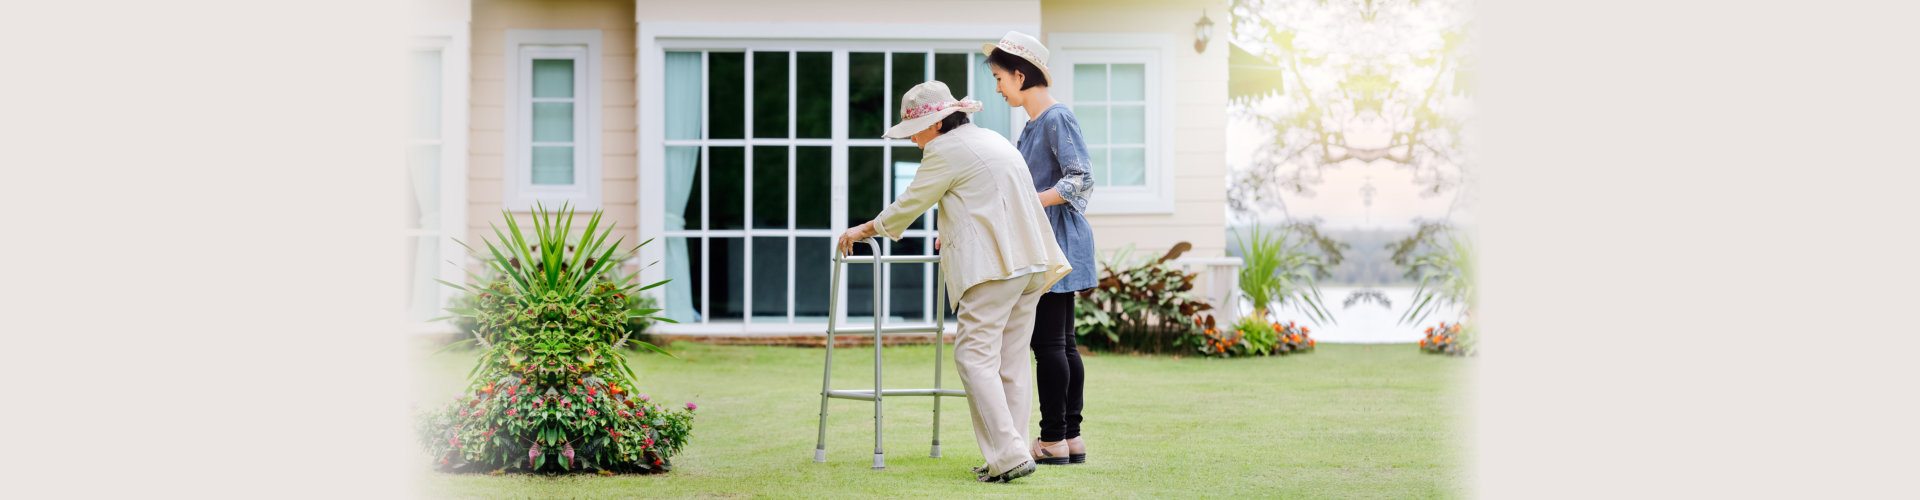 elderly woman exercise walking in backyard with caregiver